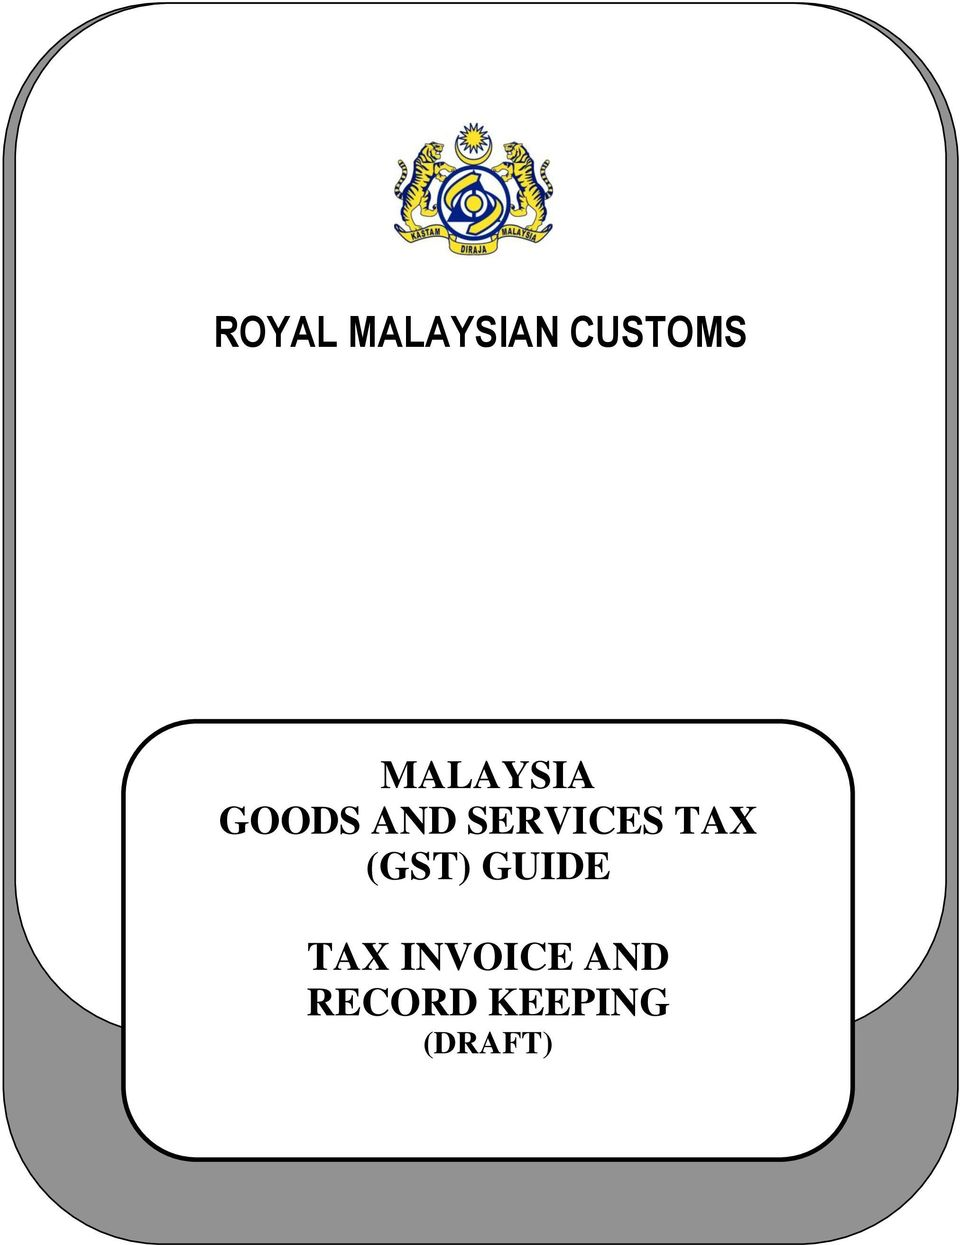 goods and services tax gst in malaysia In malaysia, the goods and services tax (gst) was implemented in 2015  in  fact, exempting essential medicines from tax is in line with the malaysian national.